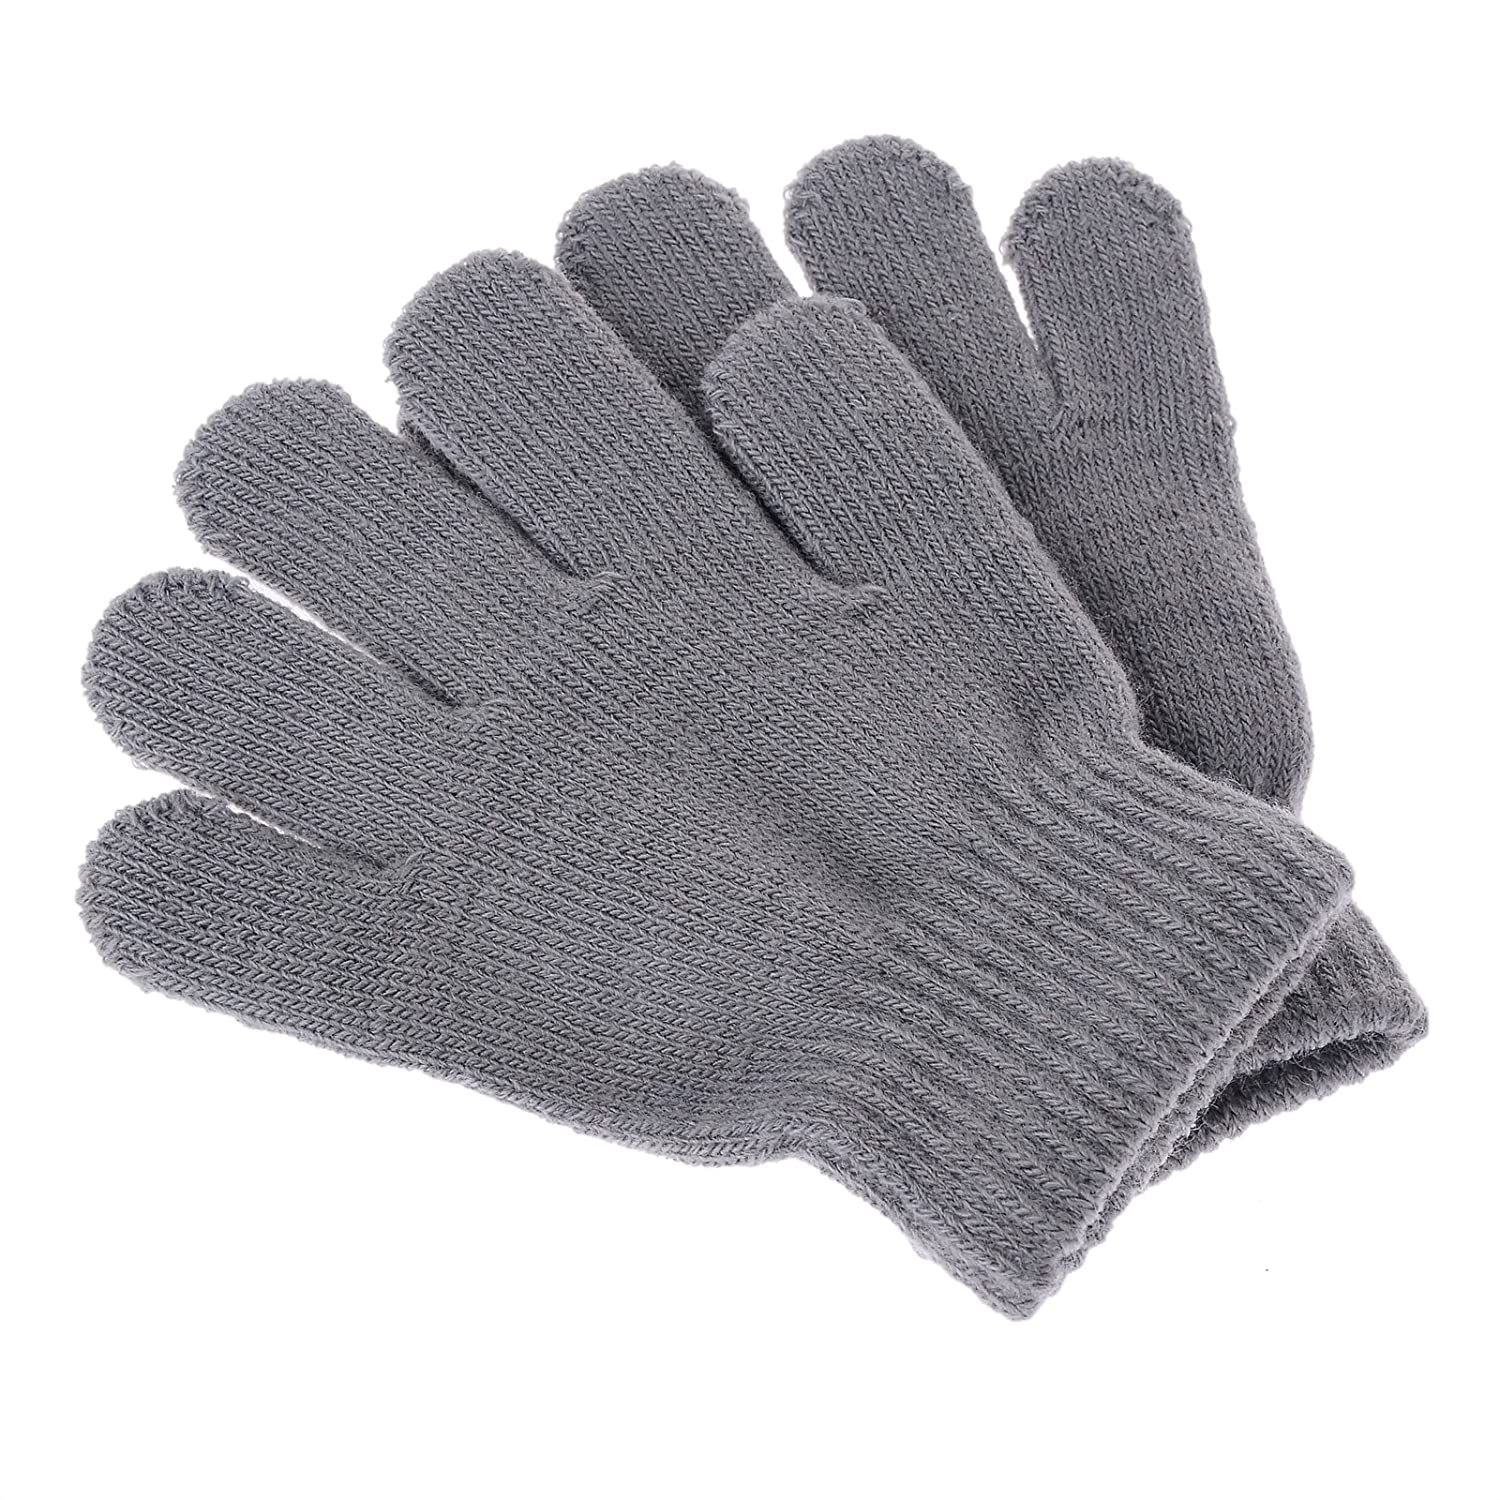 Pinksee Kids Boys Girls Winter Warm Stretchy Knitted Magic Gloves